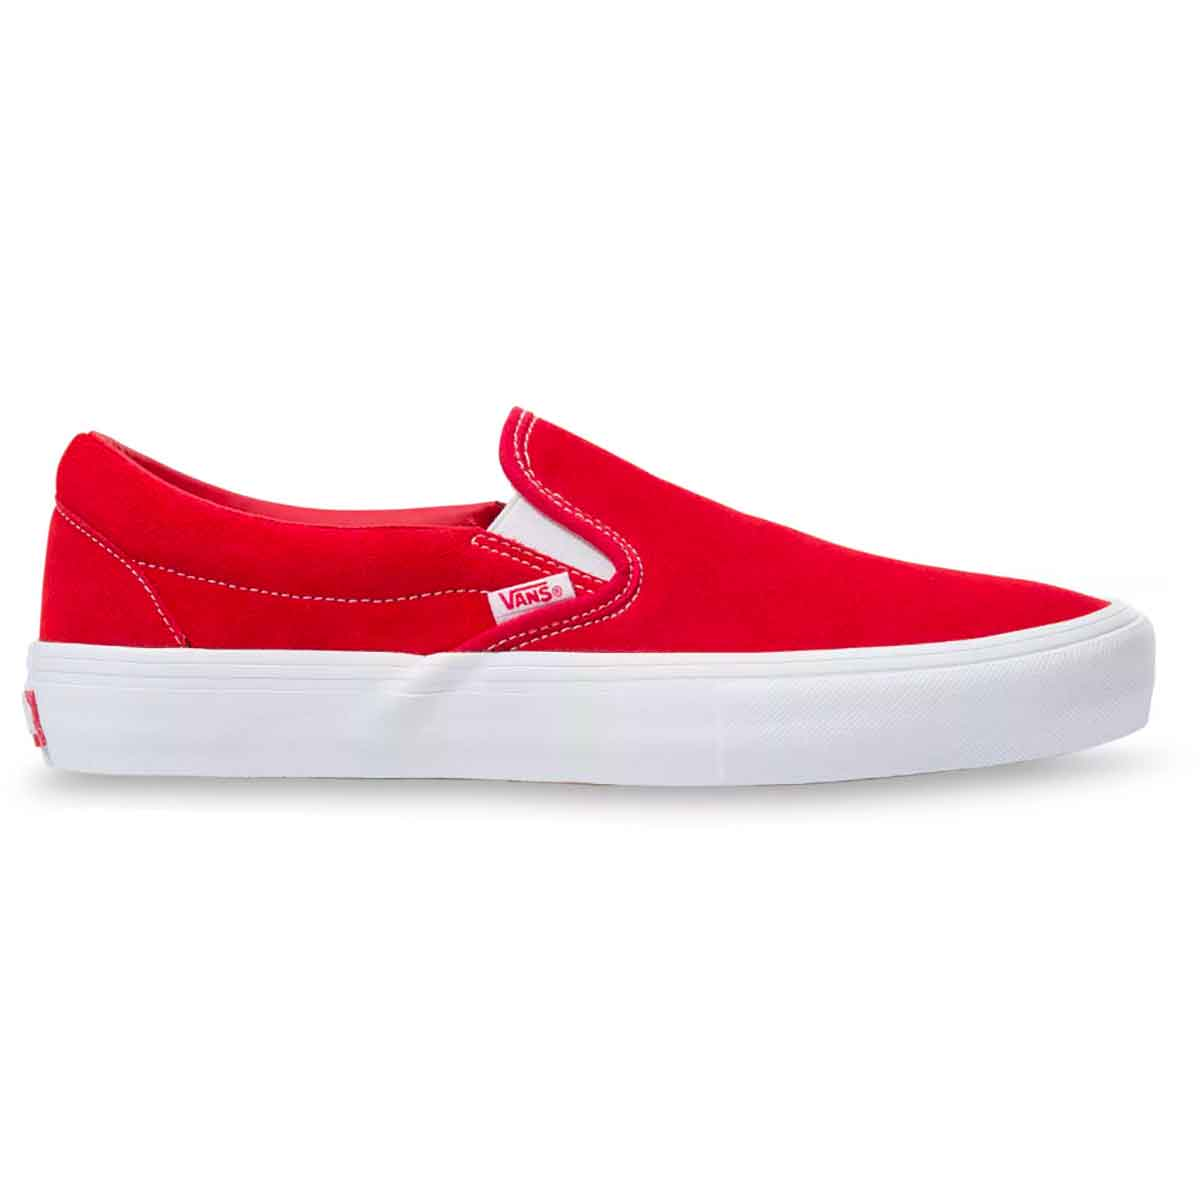 Vans Slip On Pro Suede Shoes - Red